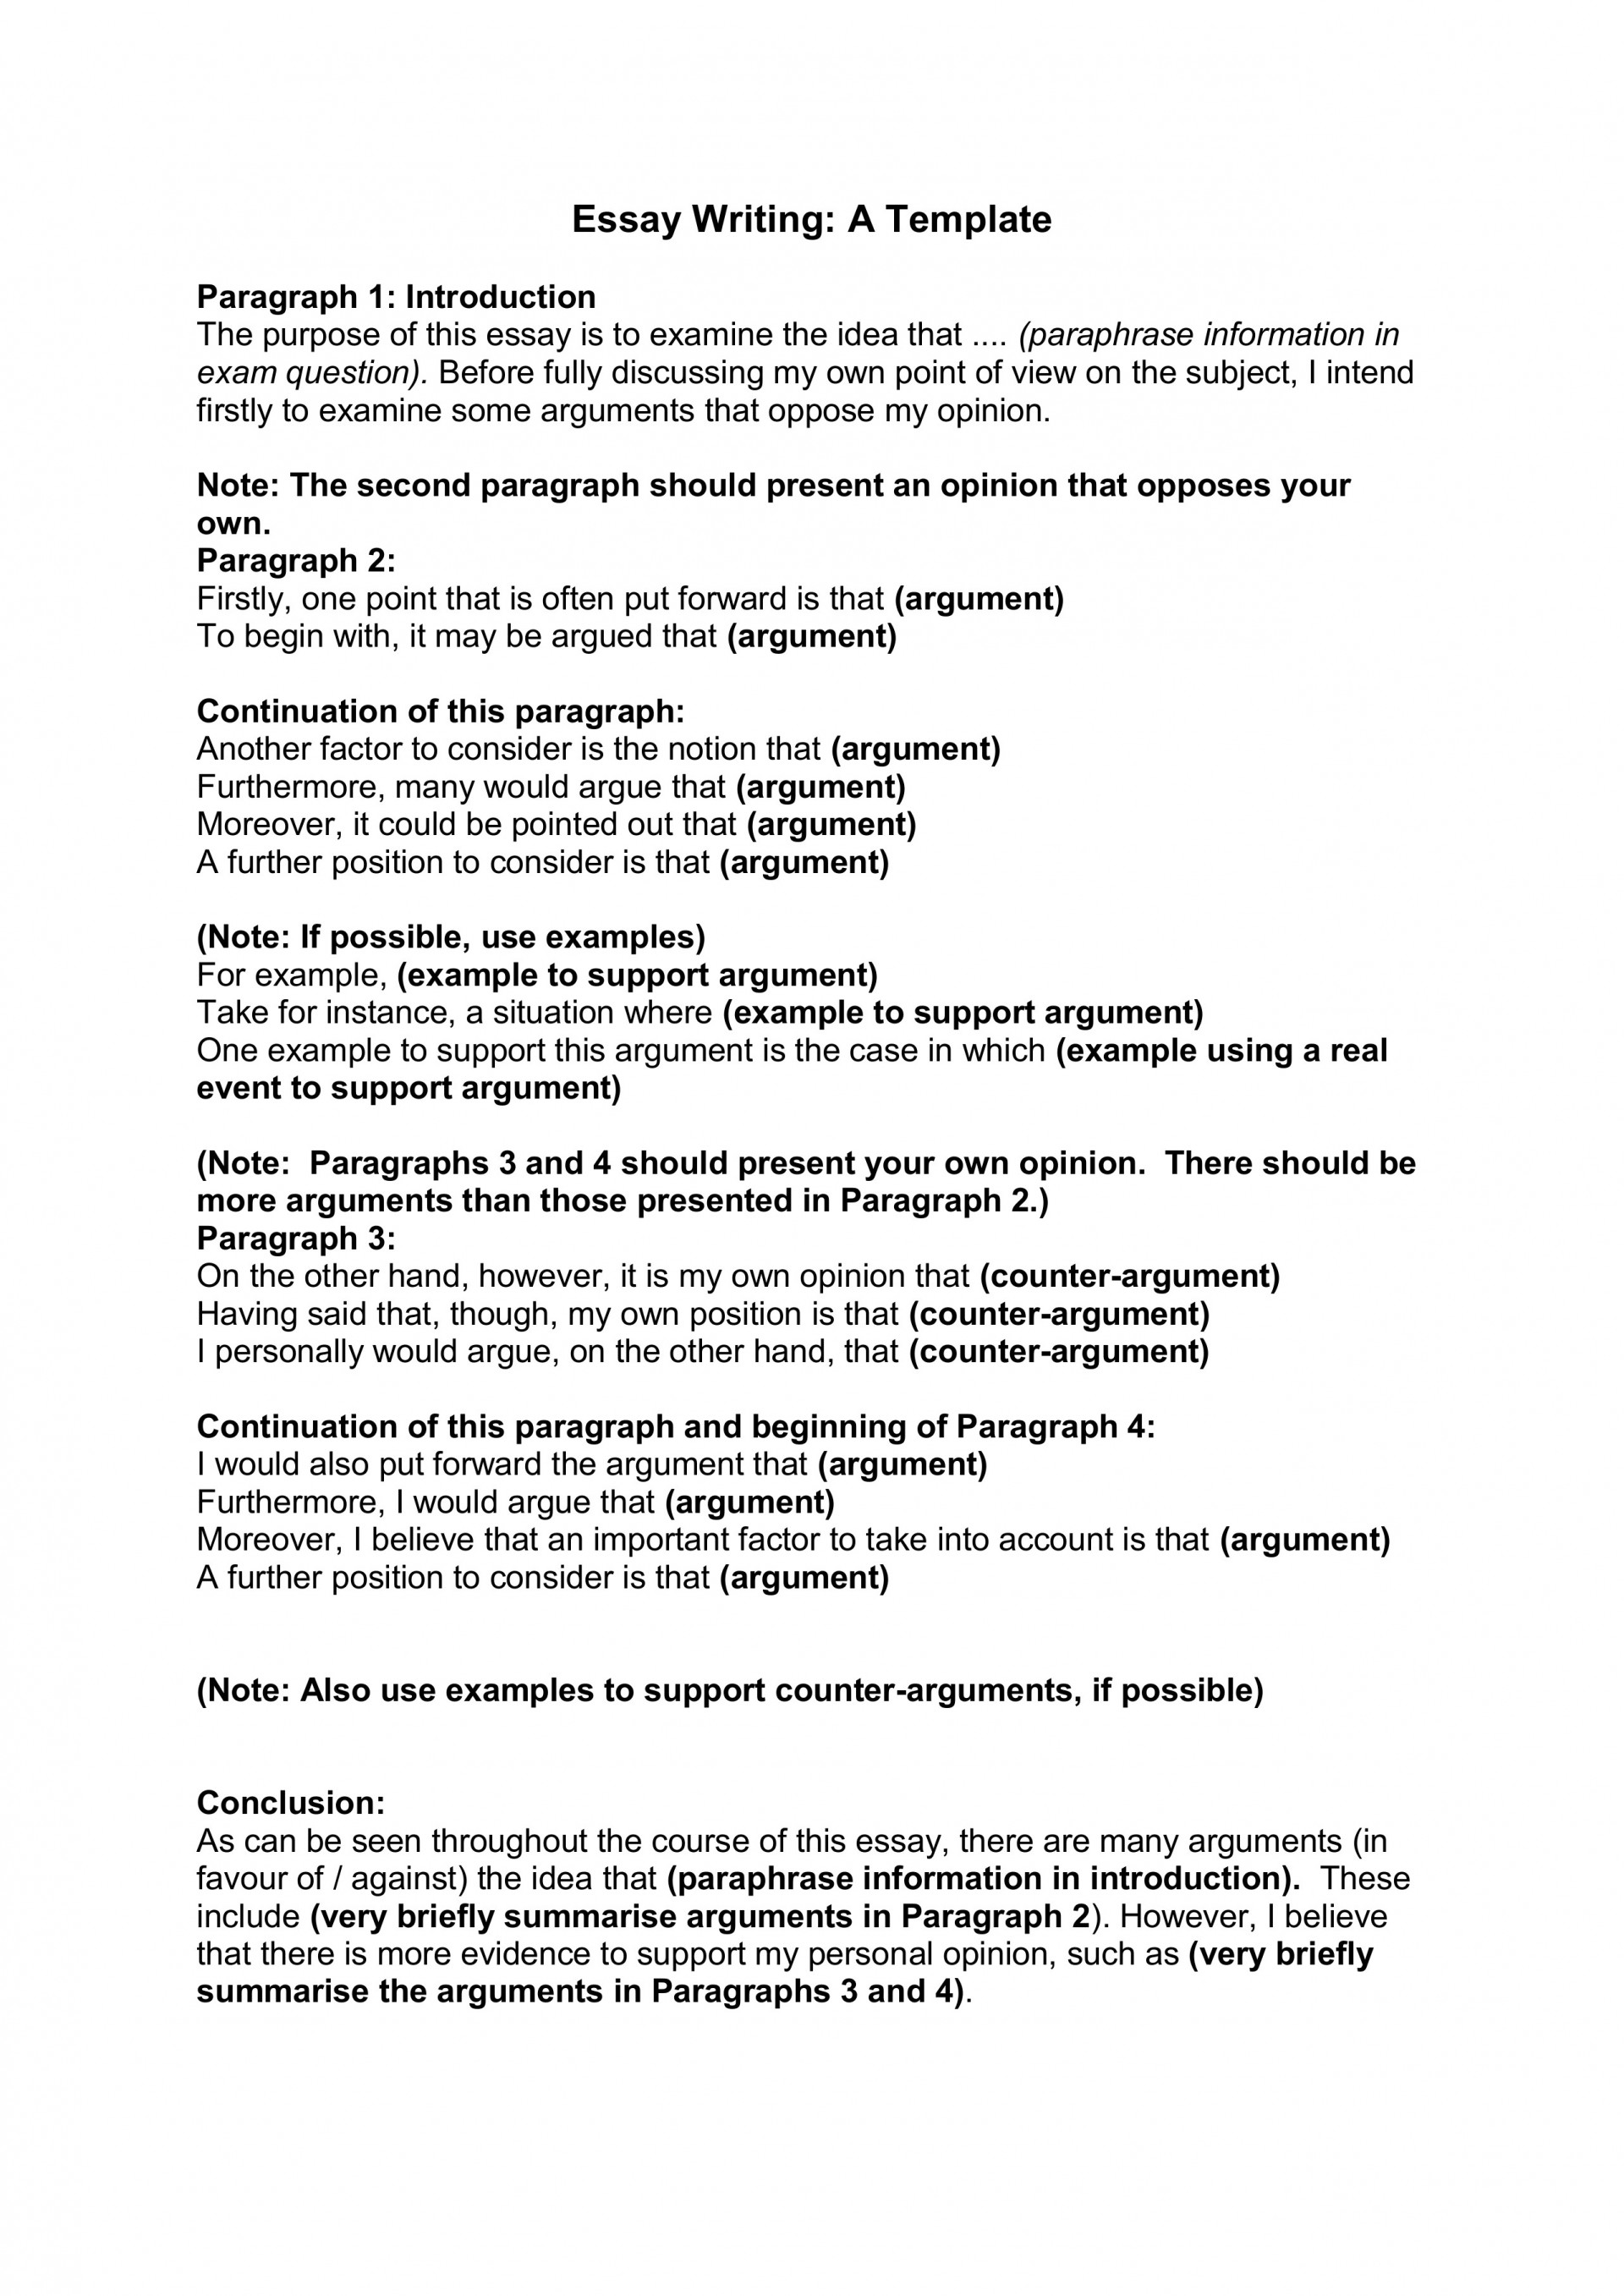 025 Essay Writing Template For Part How Many Sentences Are In Best A 5 Paragraph Short 1920